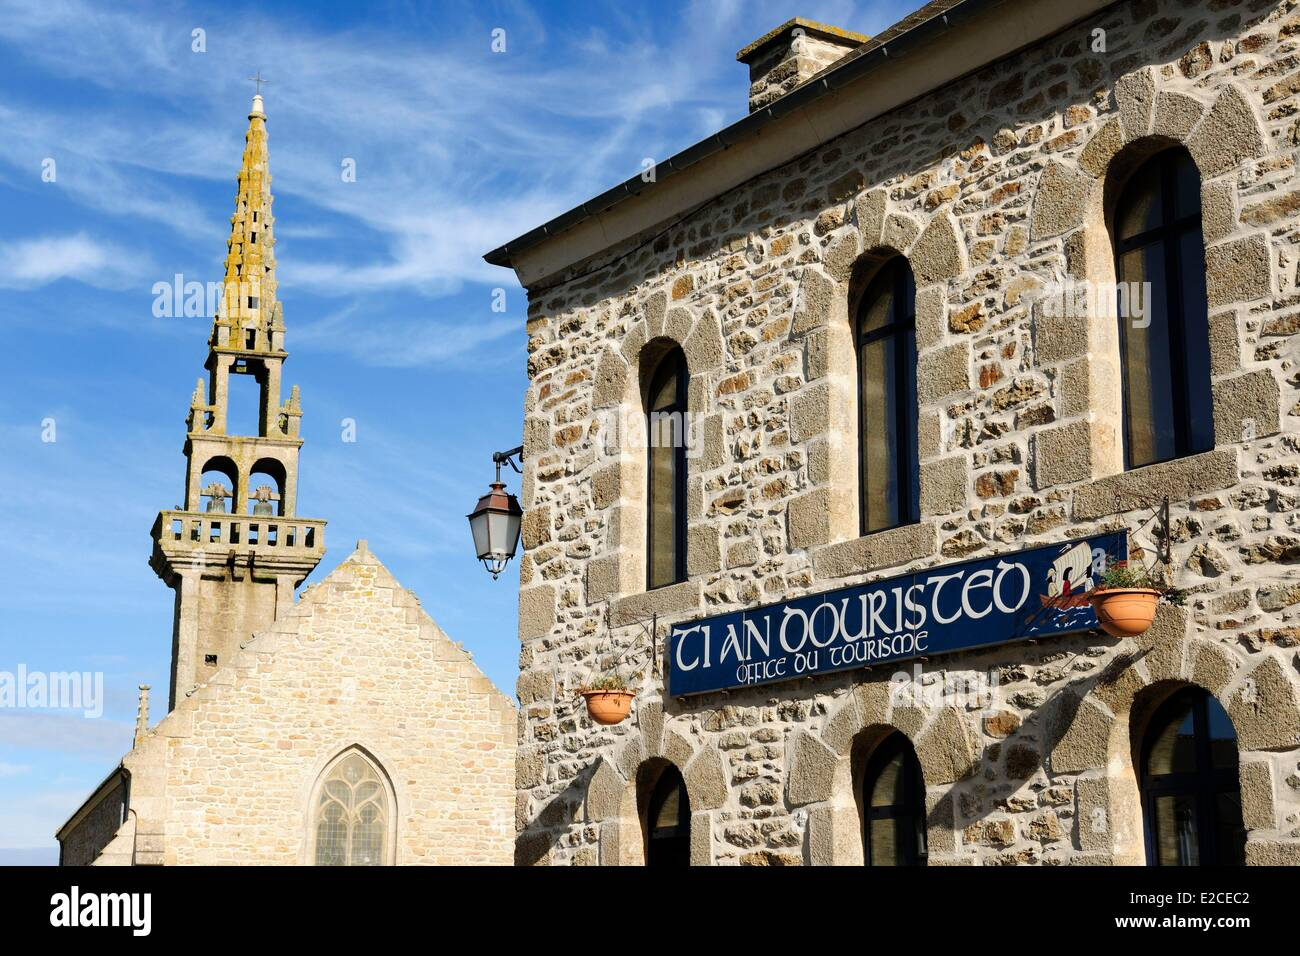 France, Finistere, Pagan country, the Legends Coast, Kerlouan, the chapel Sainte Anne - Stock Image